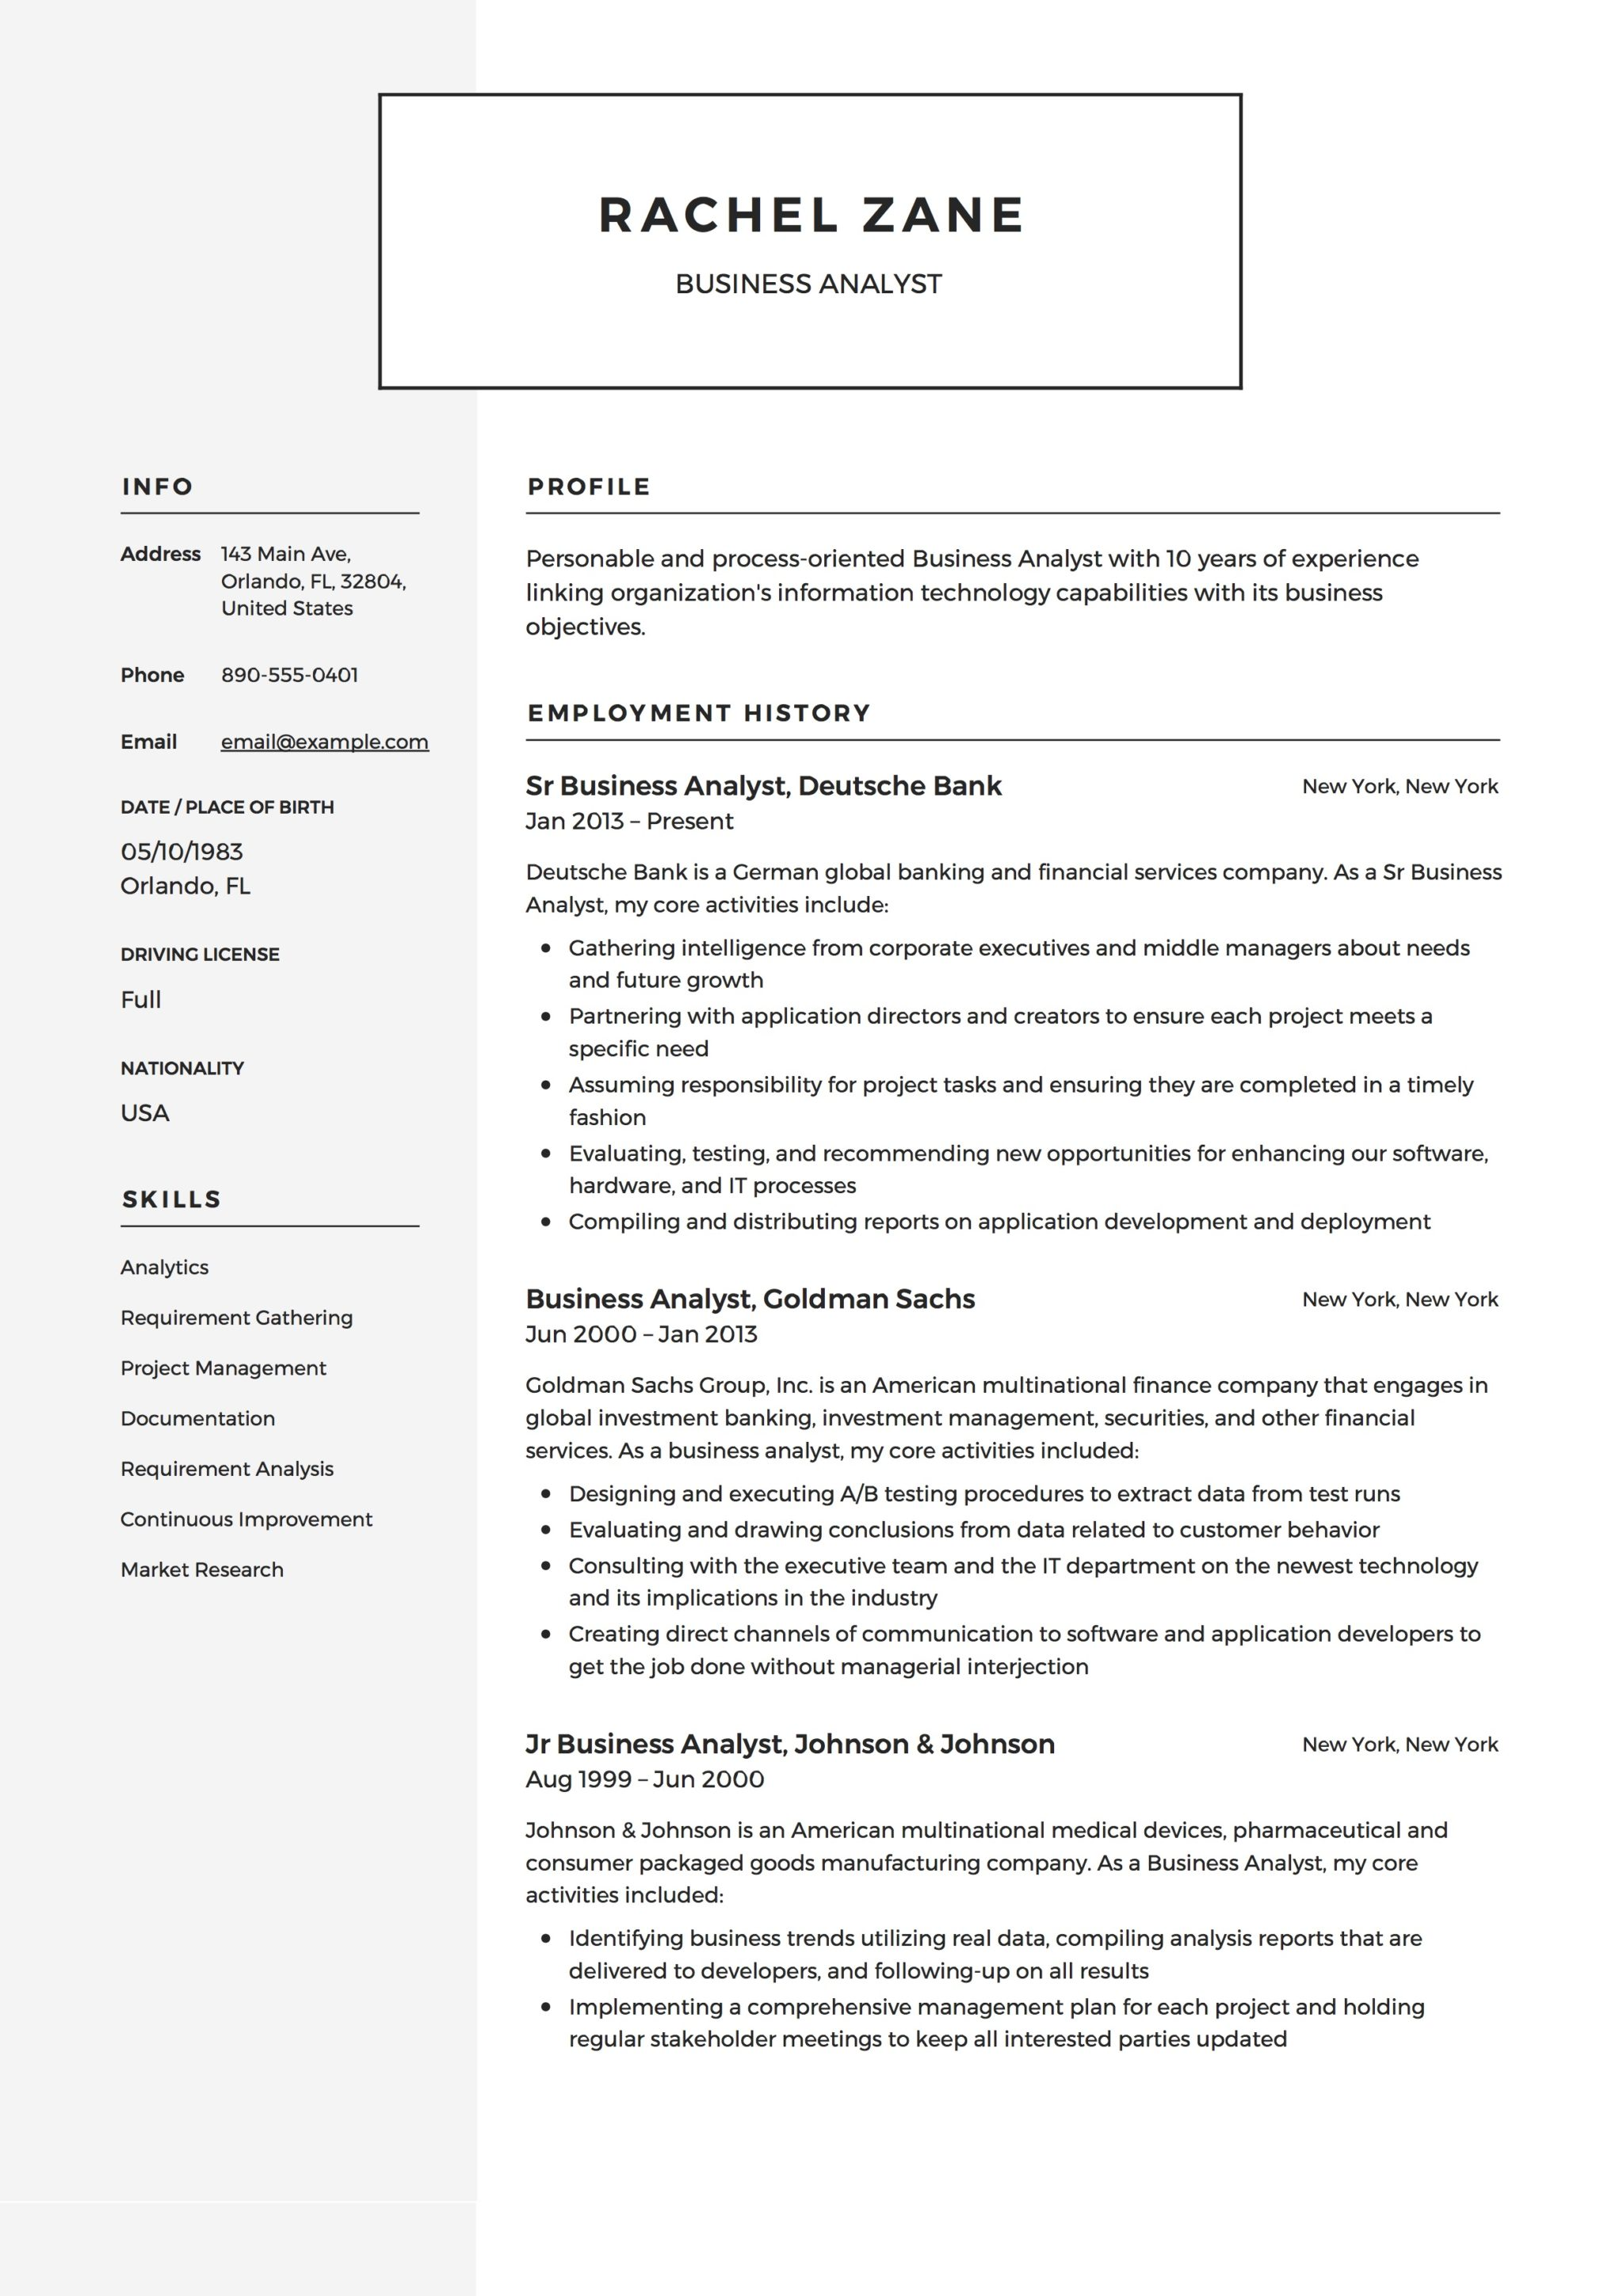 12 business analyst resume samples 2018 free downloads business analyst resume sample friedricerecipe Images